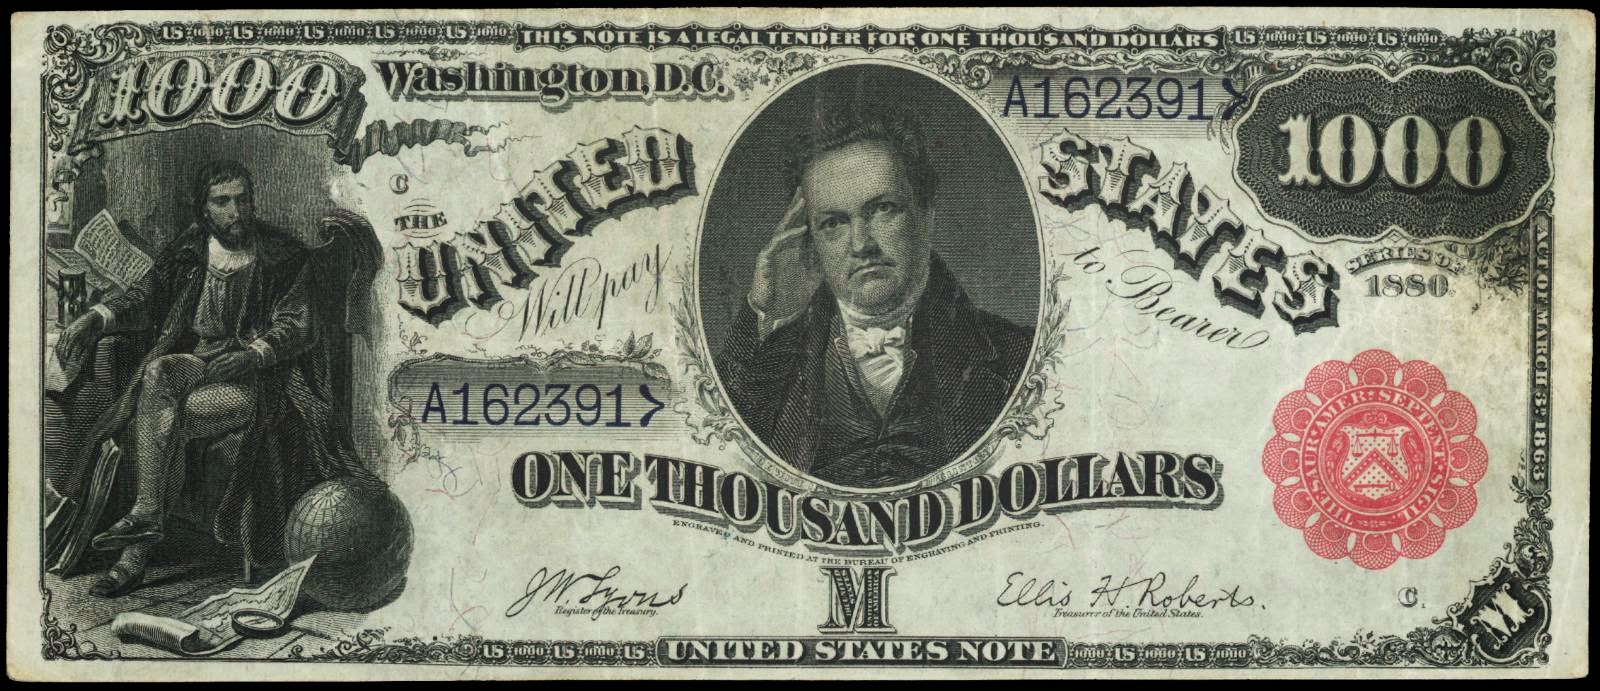 1000 Dollar bill United States Notes DeWitt Clinton